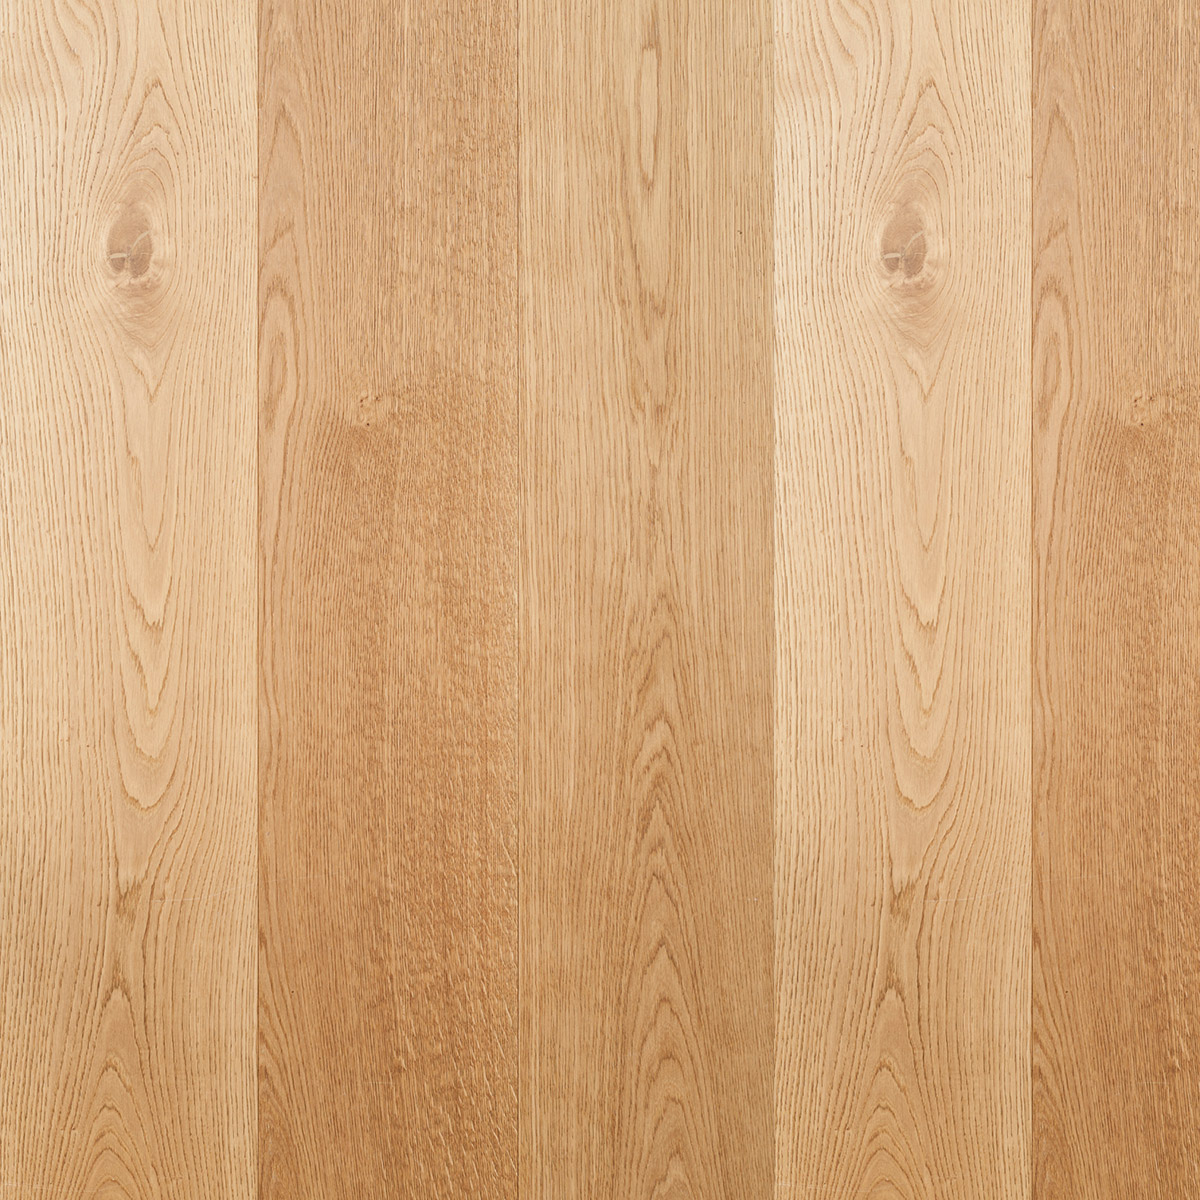 light timber wood floor